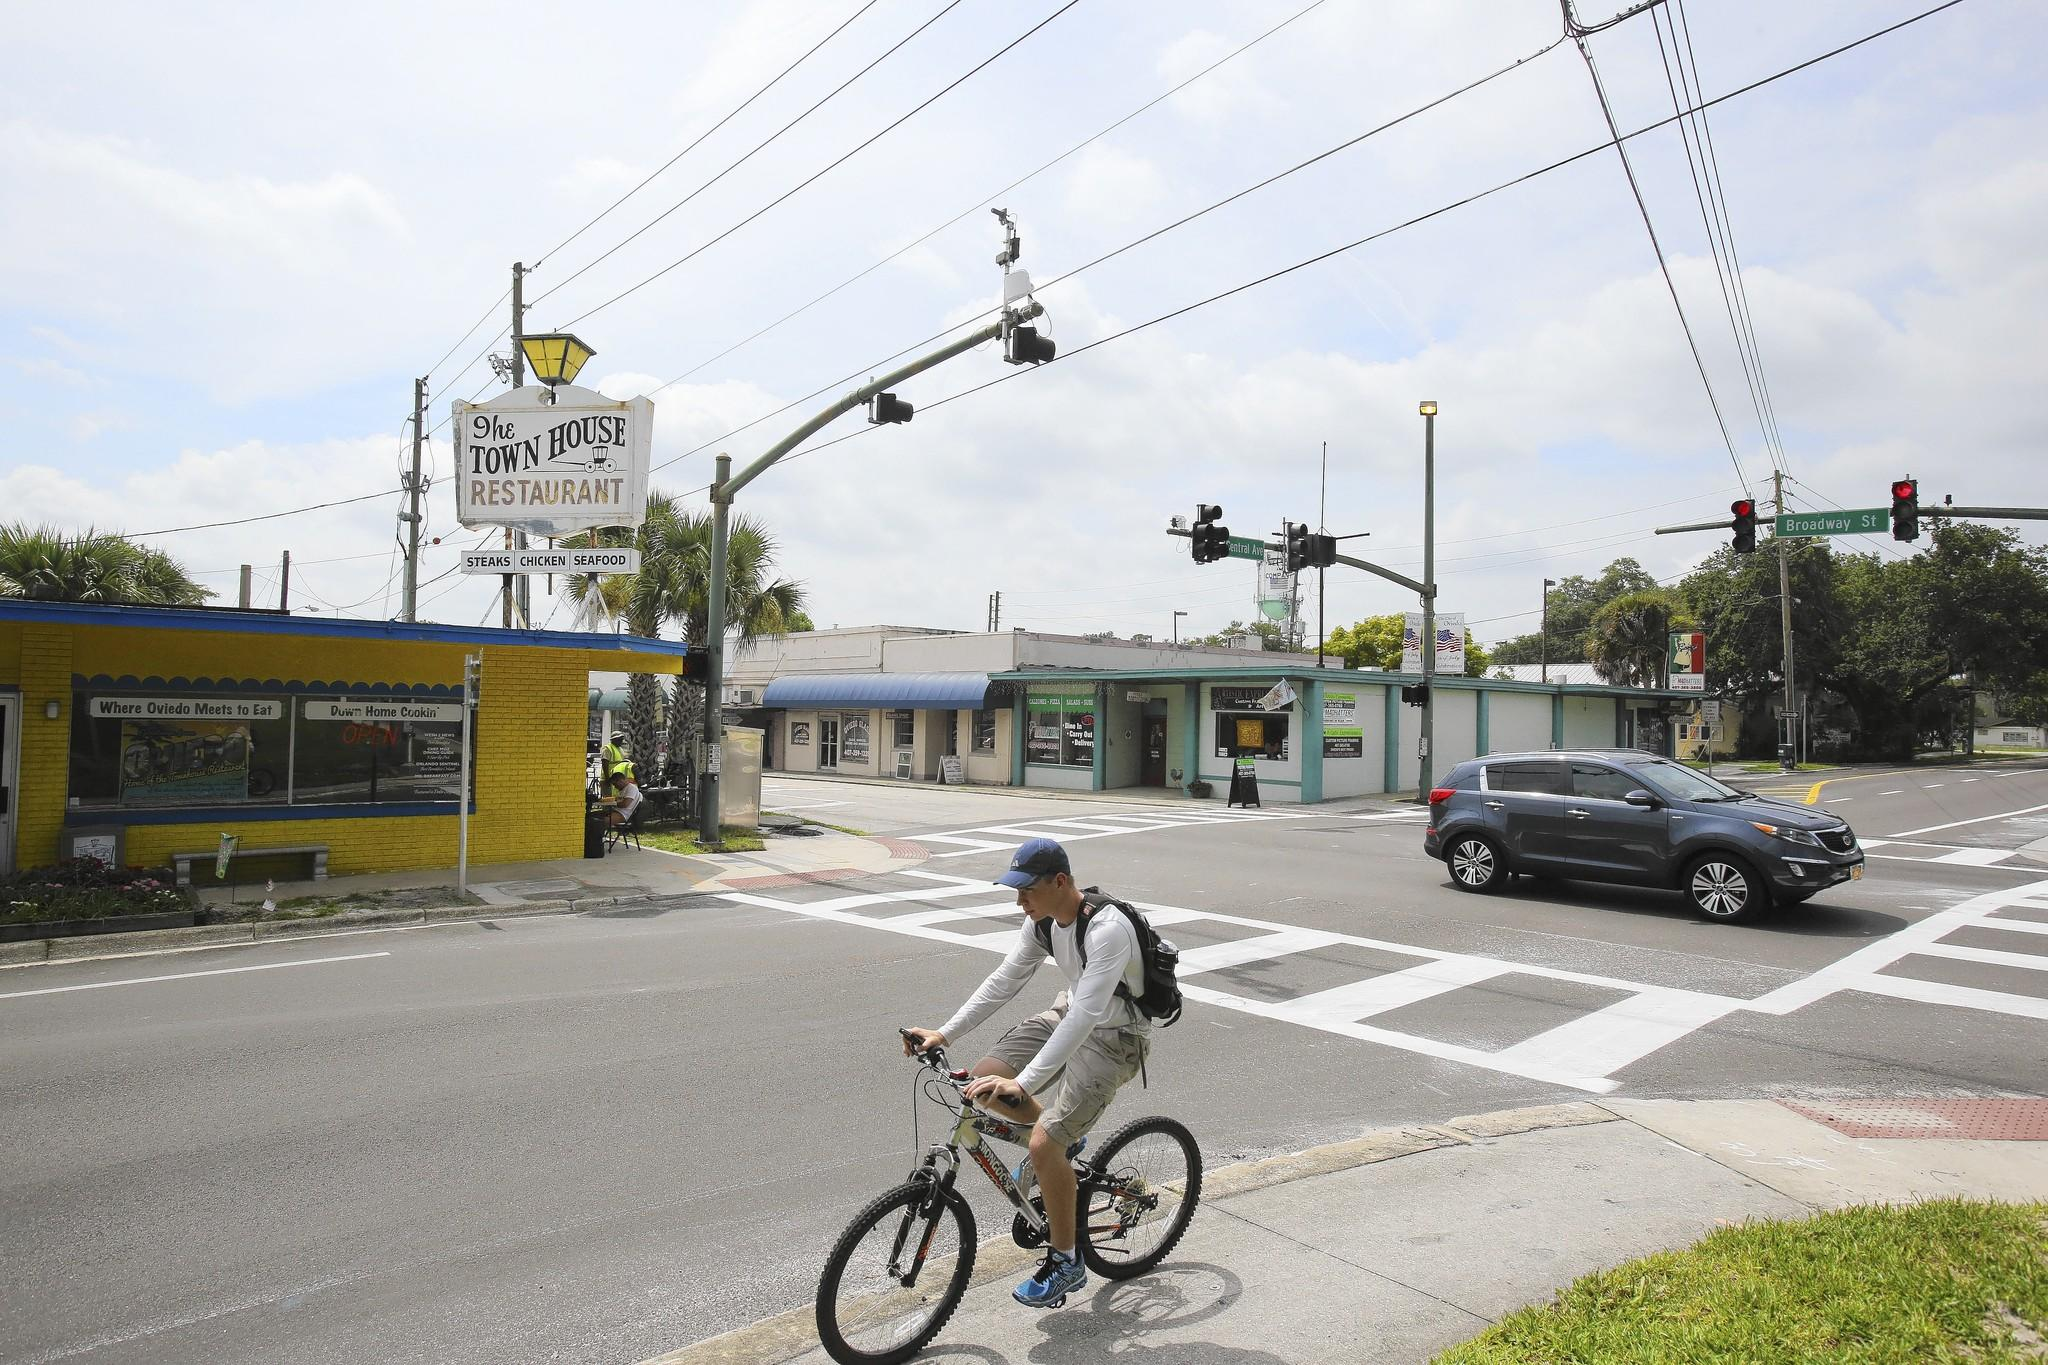 Early next year, state transportation crews will start tearing down buildings in downtown Oviedo to begin one of the most complicated road improvement projects in the city's history.